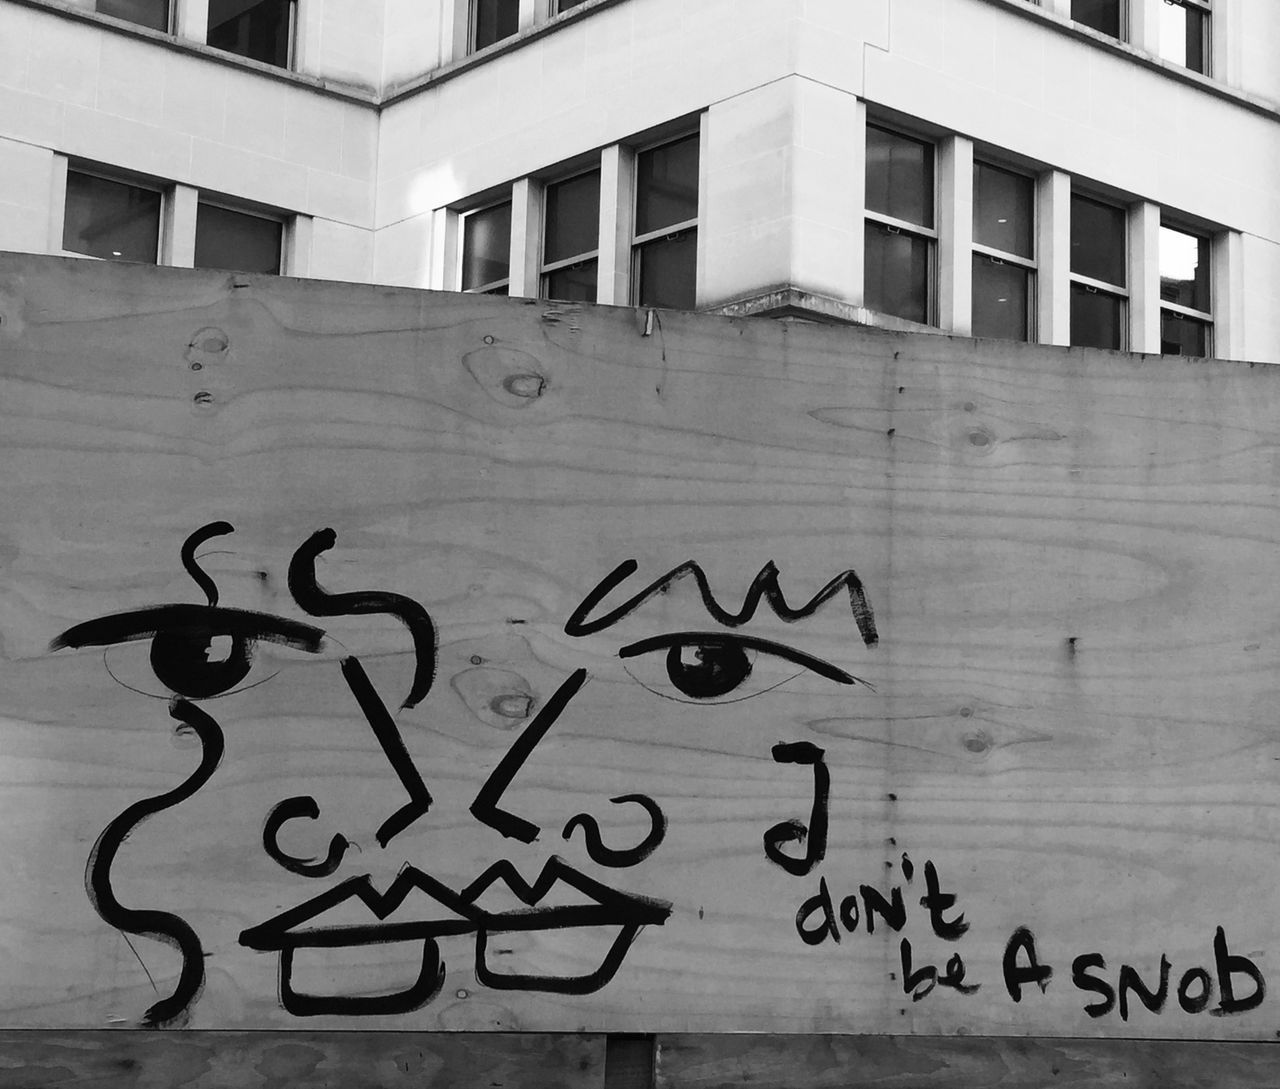 Black And White Communication Found Message Anna Laurini London Message Street Art Text Wall - Building Feature Wisdom Words Urban Landscape Graffitti Social Critique Popular Culture Elitism Don't Be A Snob